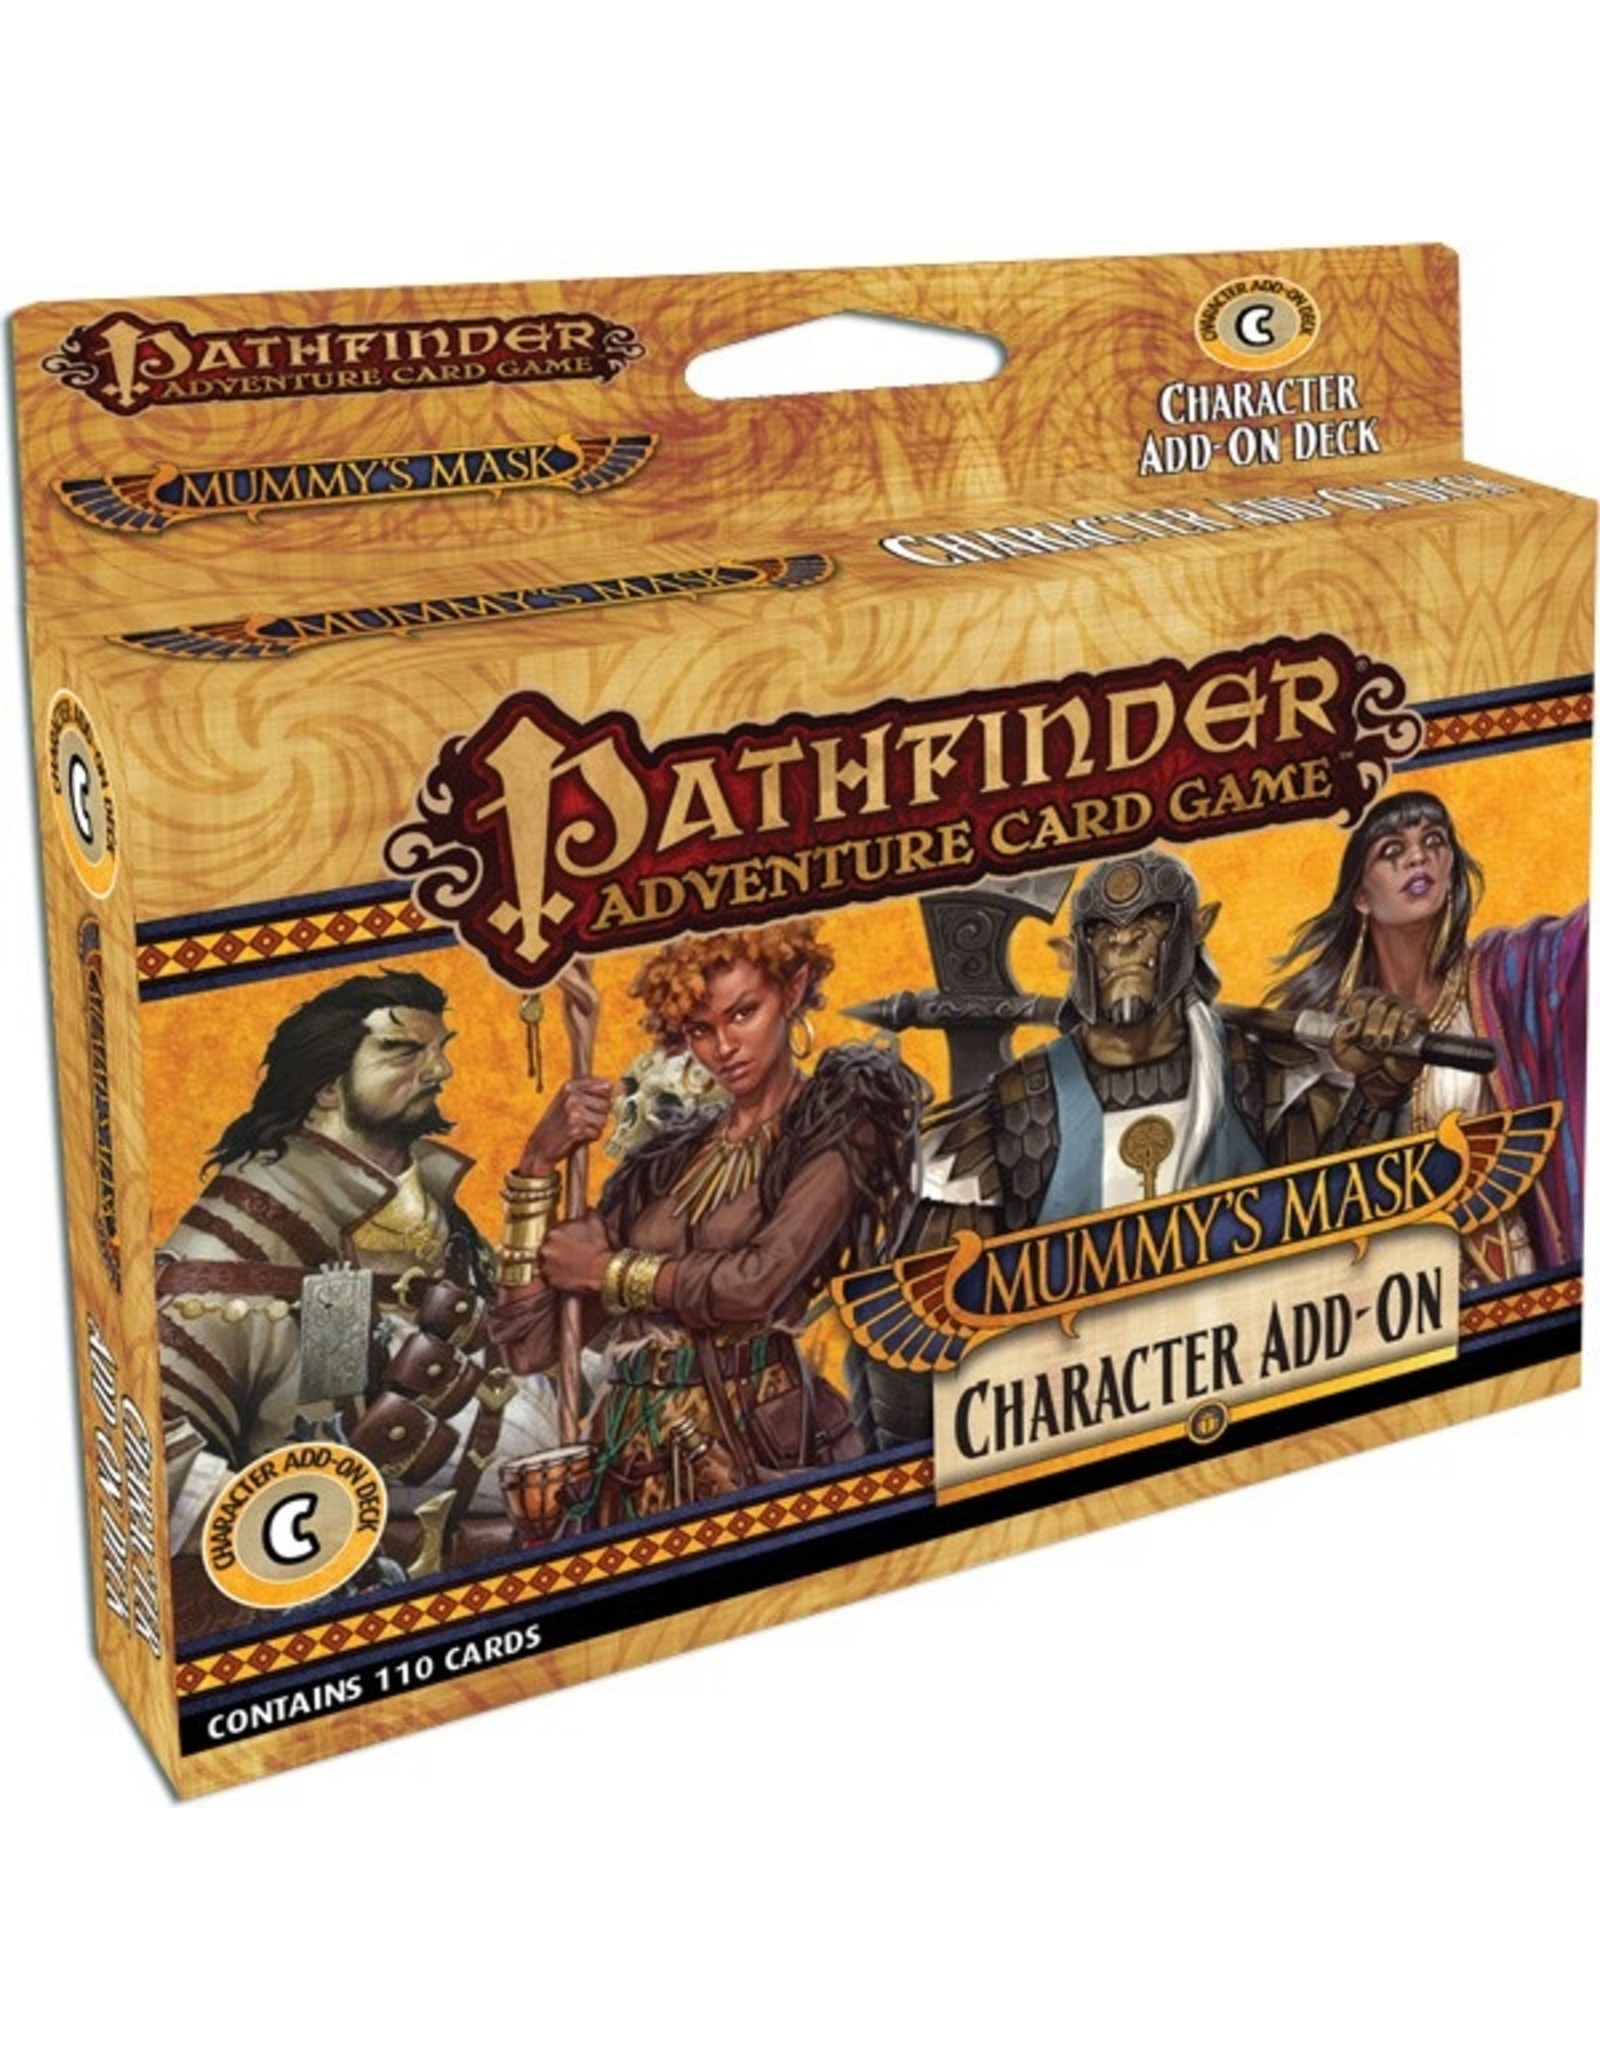 Pathfinder Adventure Card Game: Mummy's Mask Character Add-on